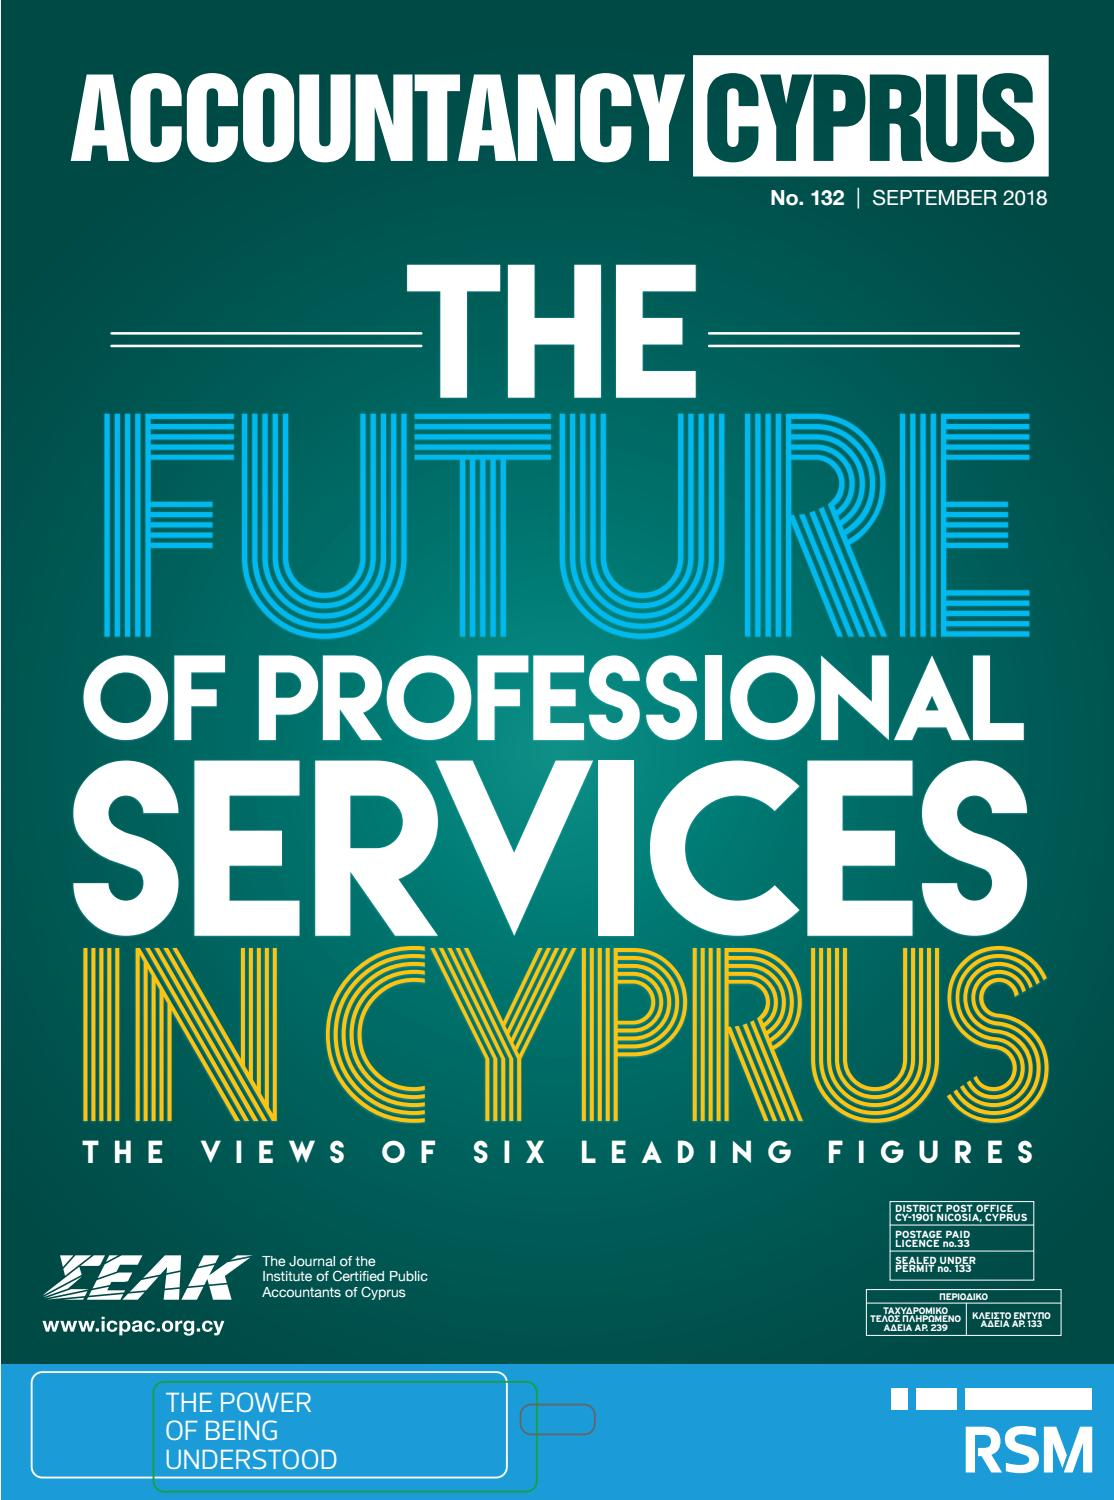 ACCOUNTANCY CYPRUS - No  132 - September 2018 by The